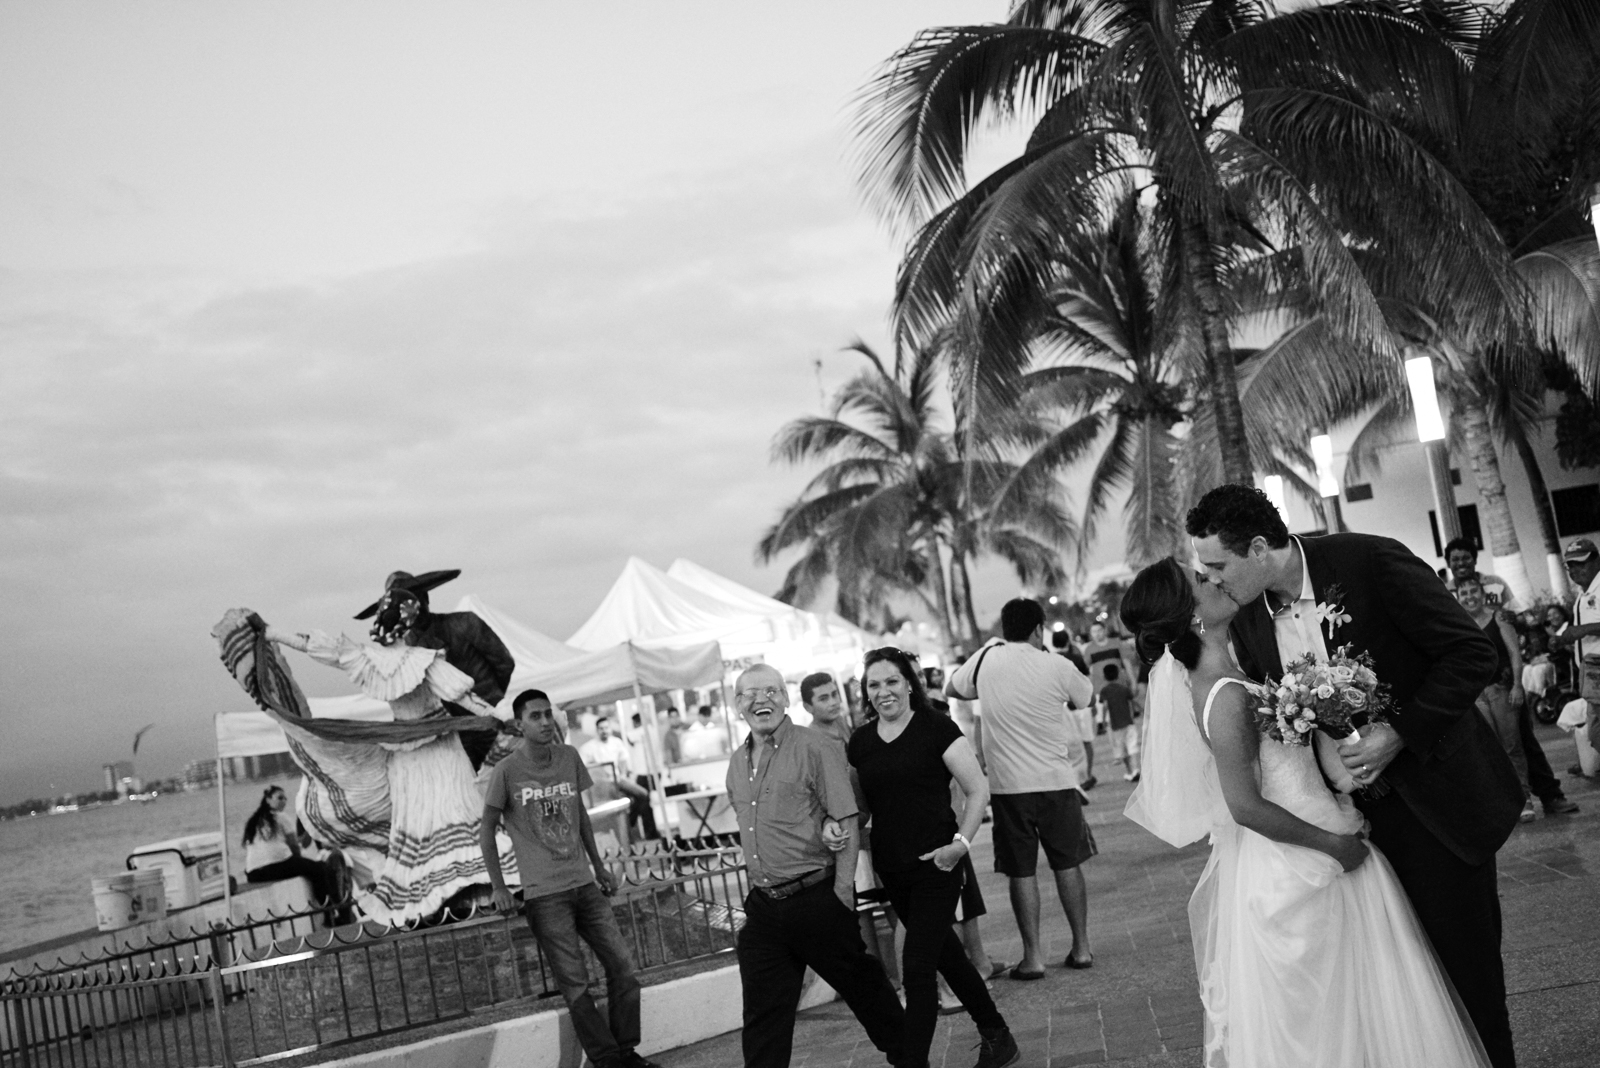 Wedding Photographer in Puerto Vallarta, Mexico